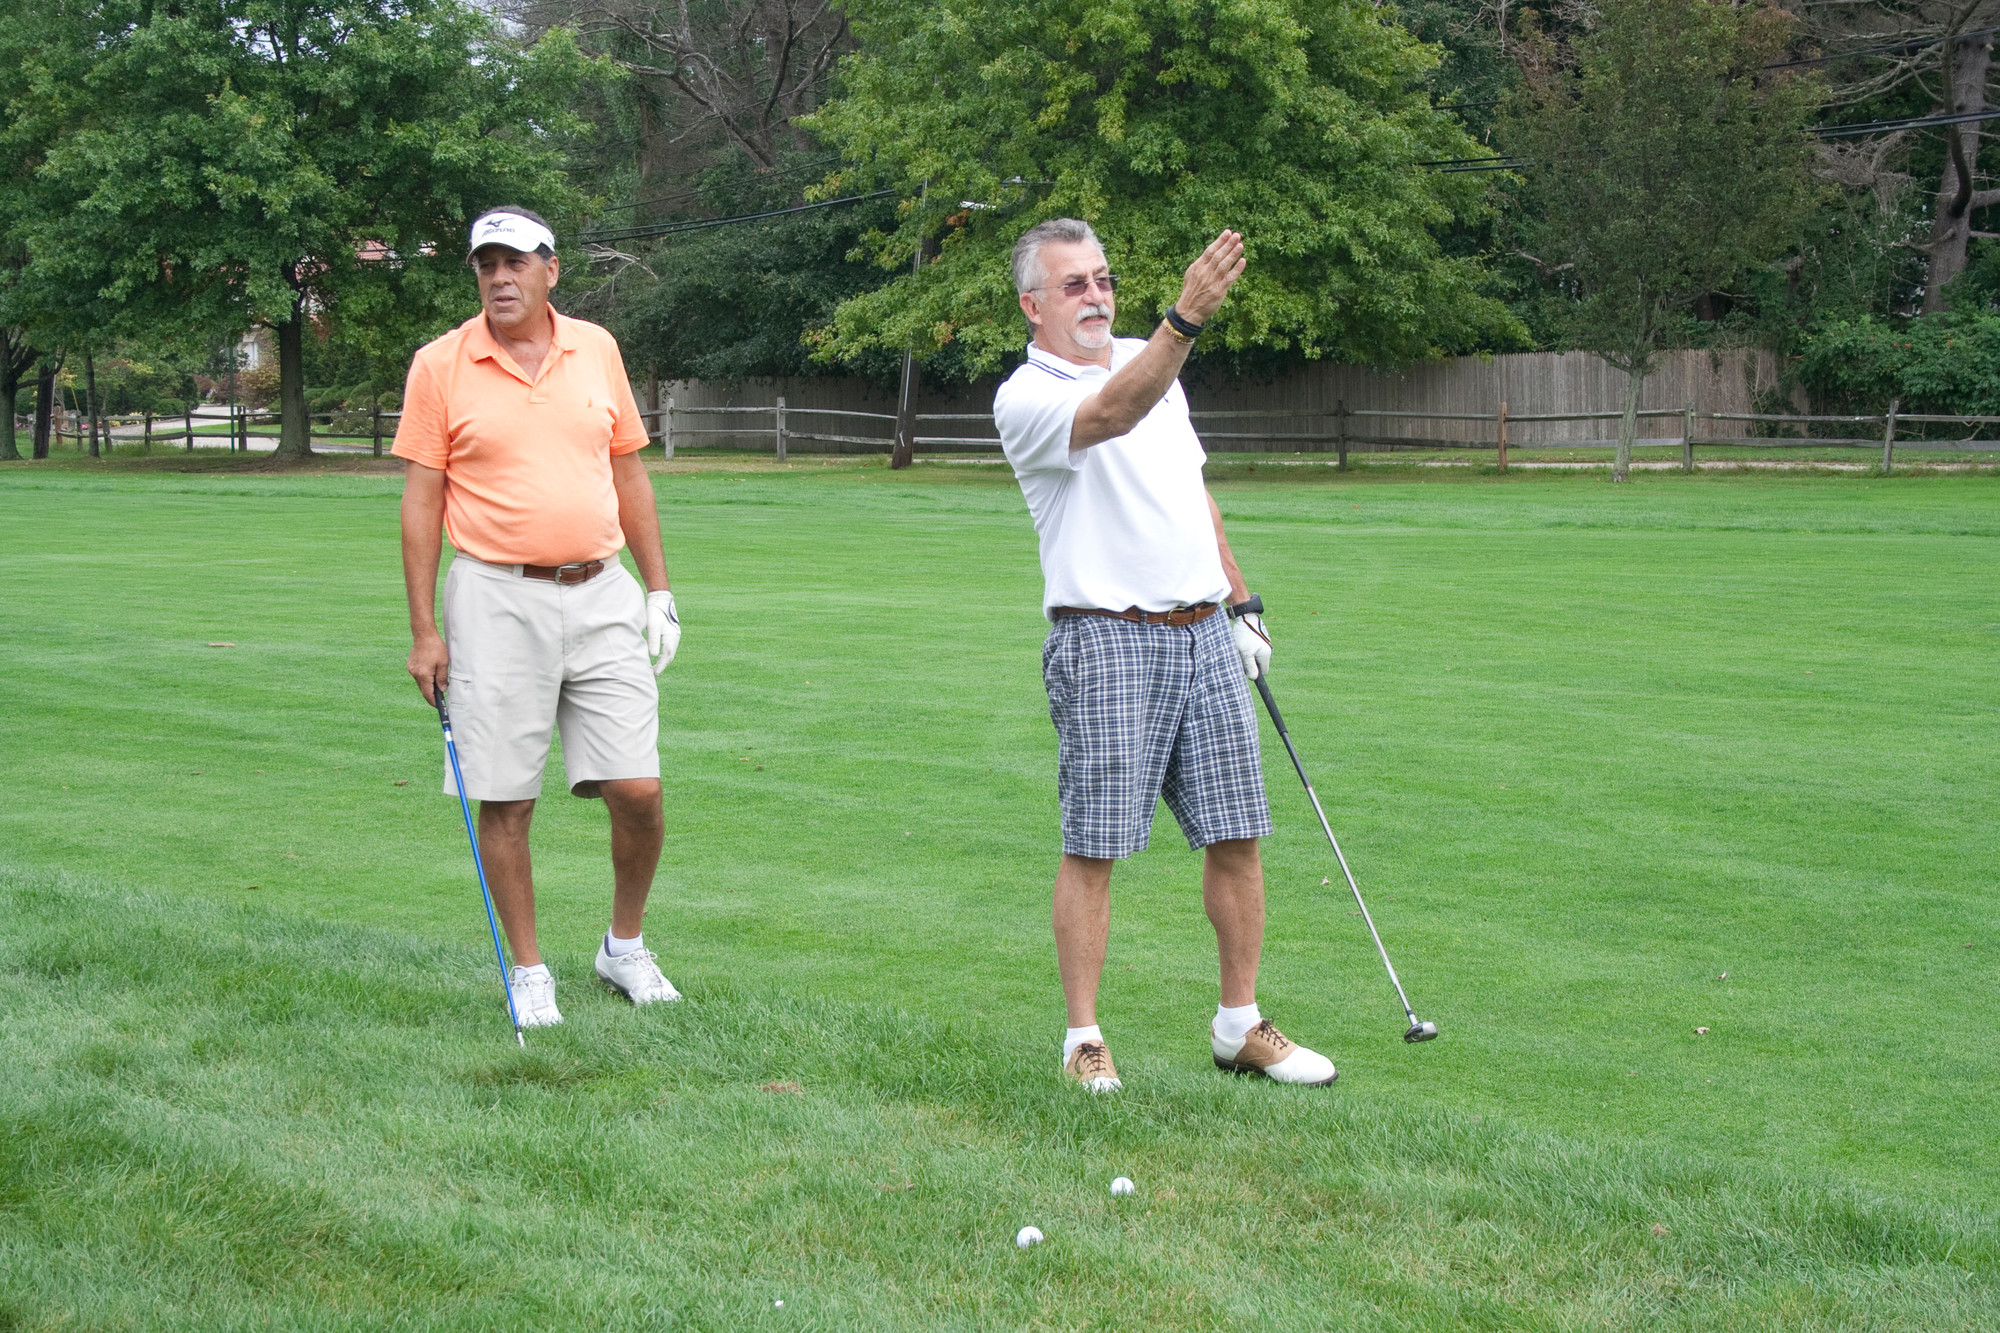 Lawrence Yacht & Country Club members partnered with the Wounded Warrior Project on a day of golf, tennis and fishing last Sunday. Above, Frank Bobby, right, lined up his shot, while Ed Henig waited his turn.